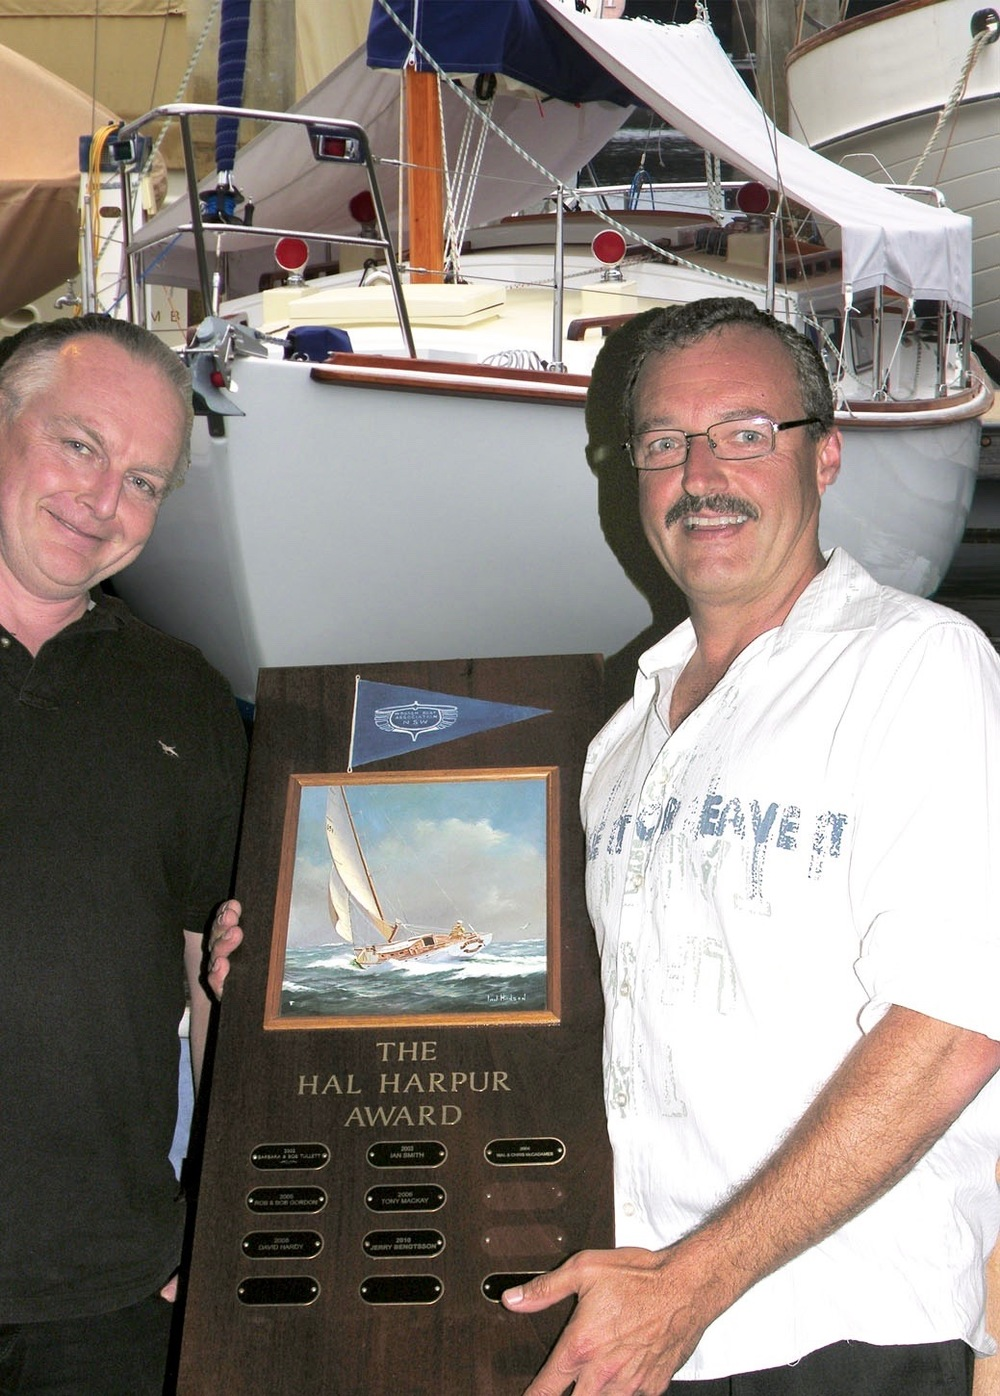 Andrew Randell receiving the Hal Harpur Award in 2011